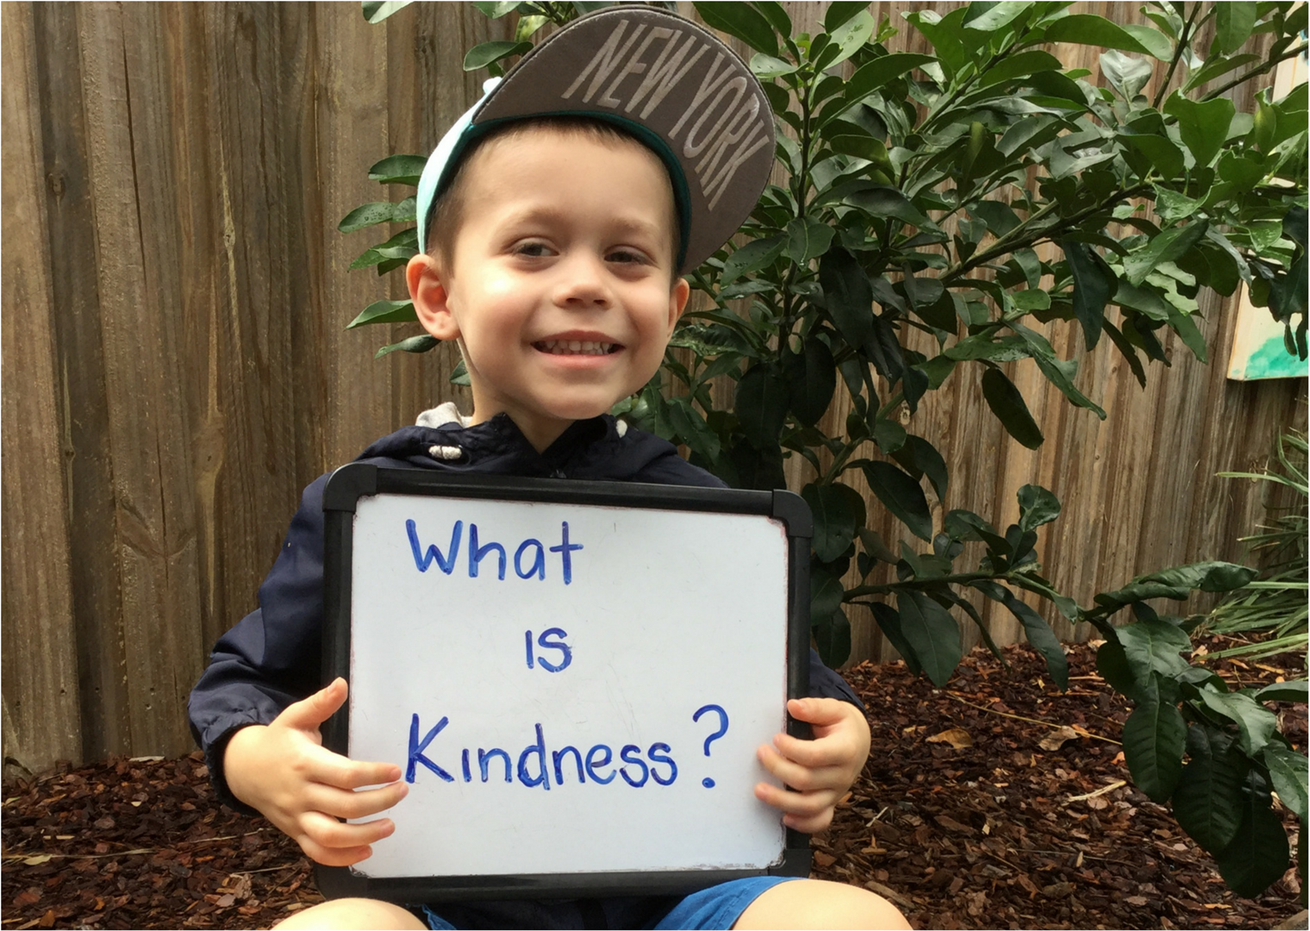 Children spread kindness through their community